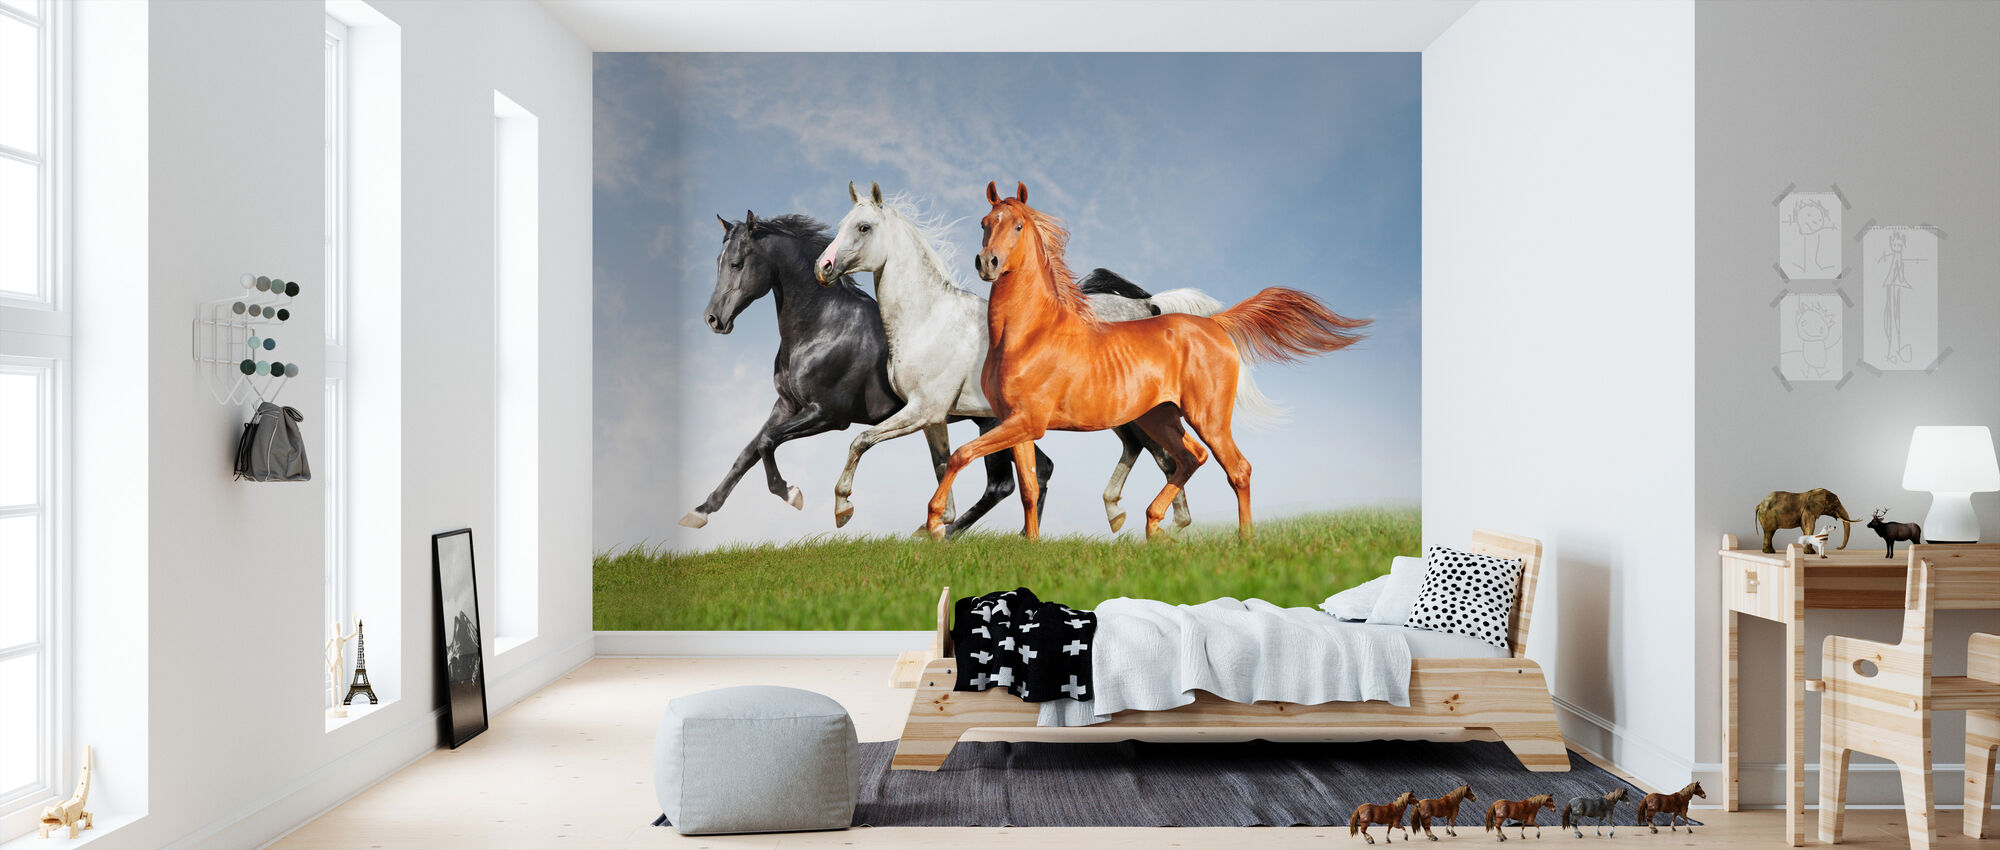 Arab Horses Run Free - Wallpaper - Kids Room